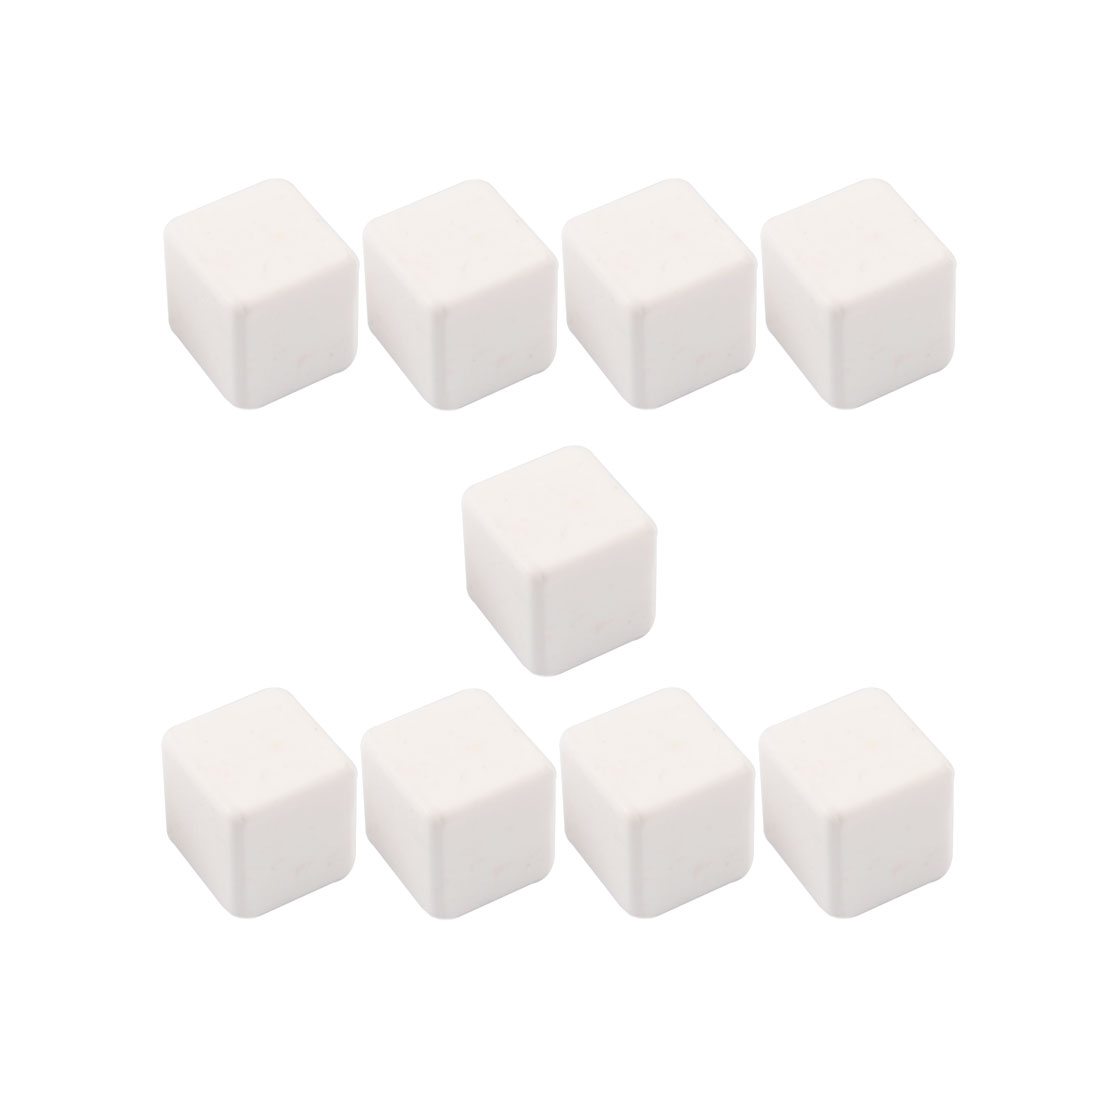 Ceramic Whisky Stones Ice Cube Drawstring Pouch Holder White 20mm x 20mm x 18mm 9 Pcs